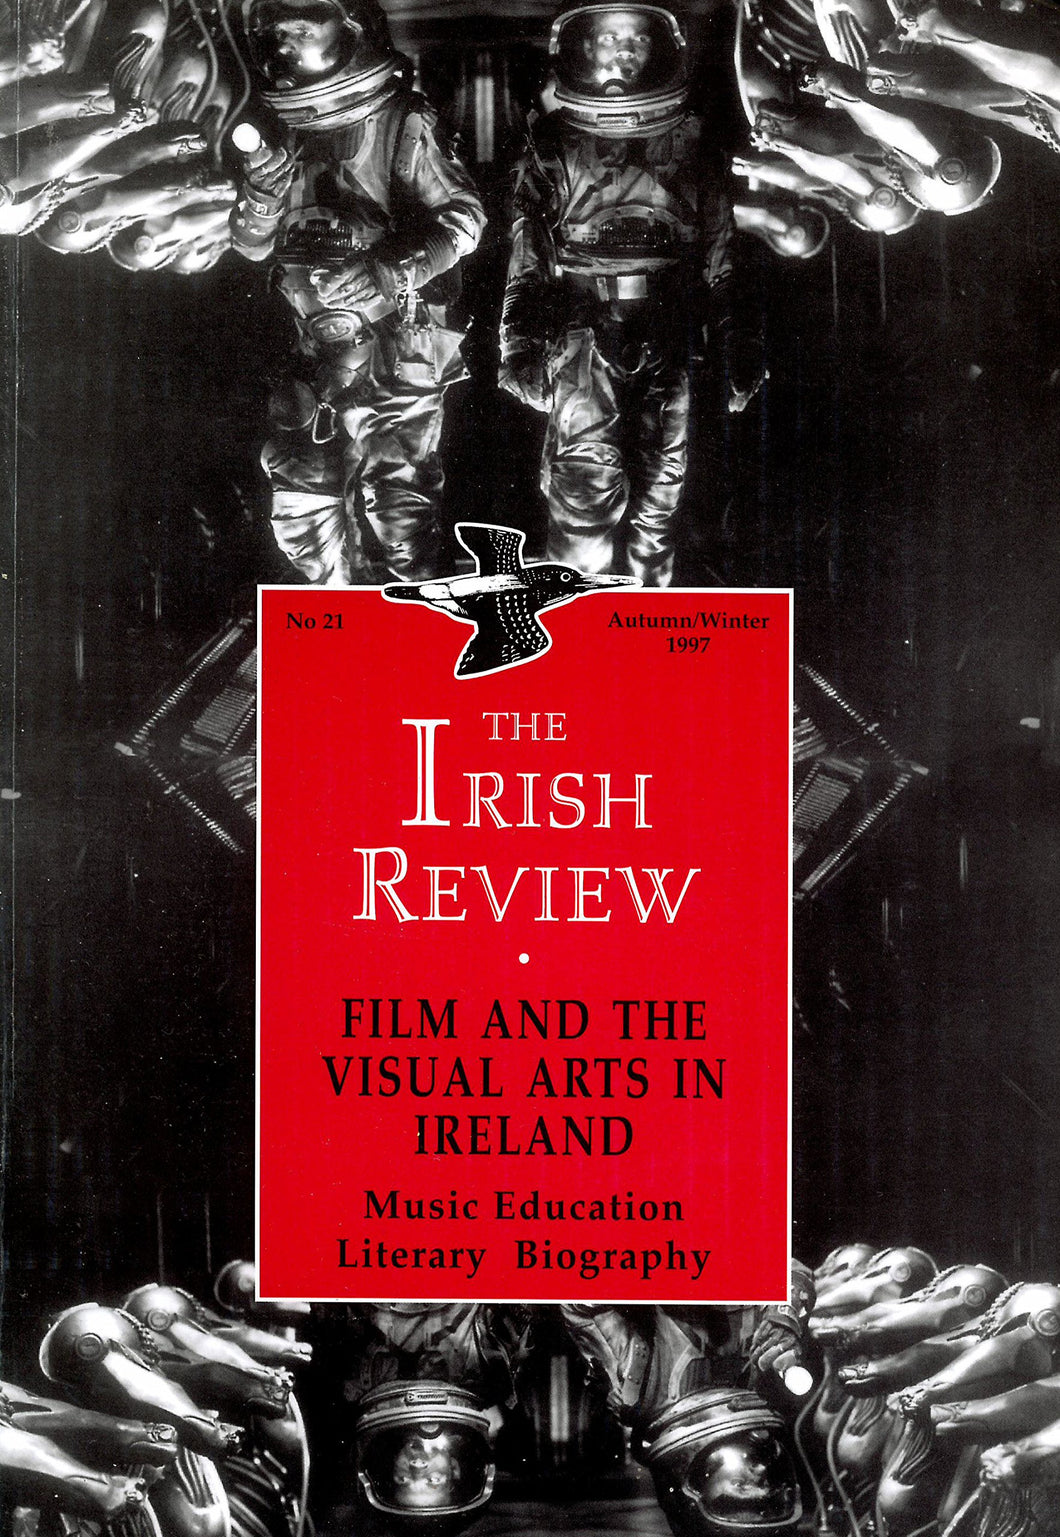 The Irish Review No 21 - Autumn/Winter 1997: Film and the Visual Arts in Ireland: Music, Education, Literary Biography